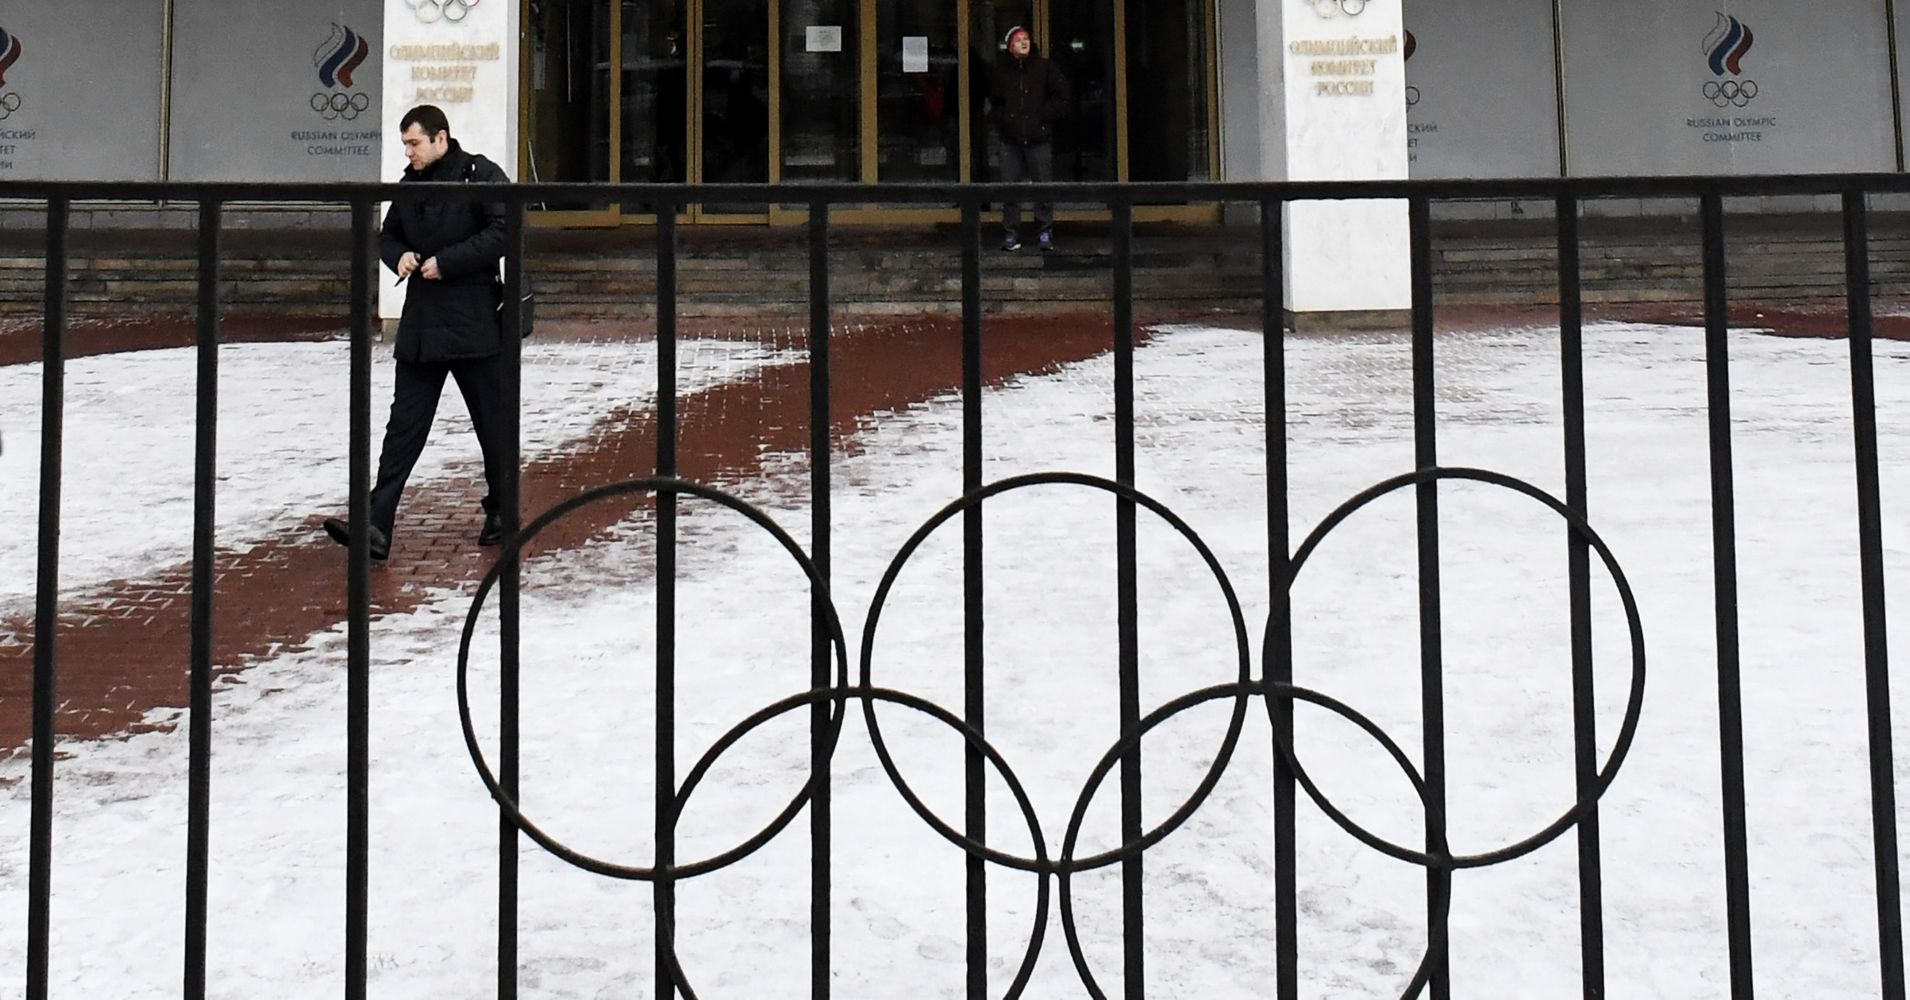 Russia's Olympic Team Barred From 2018 Winter Games For Doping